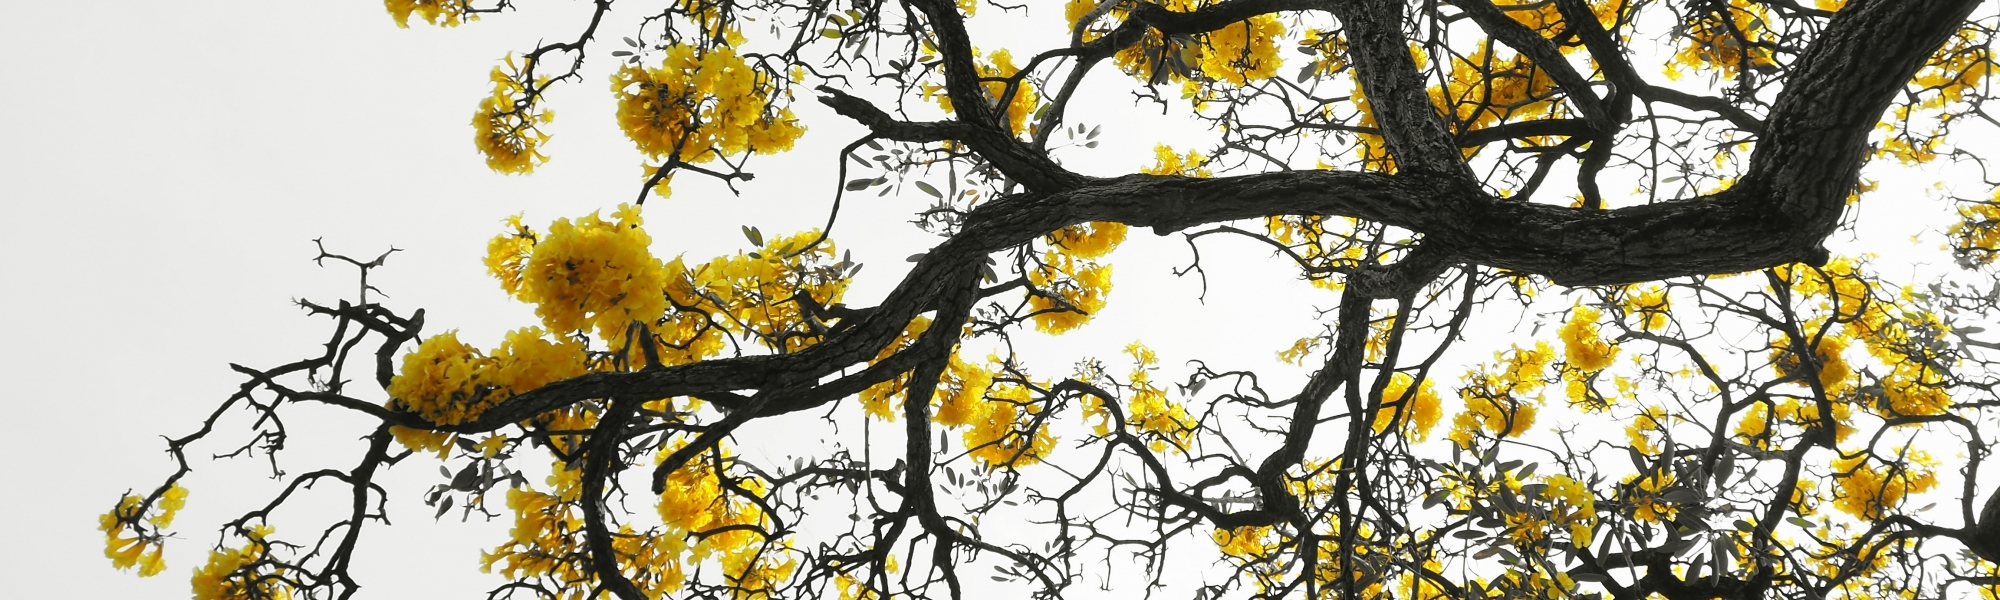 Kassia Academy About Us header image of yellow blossom on trees